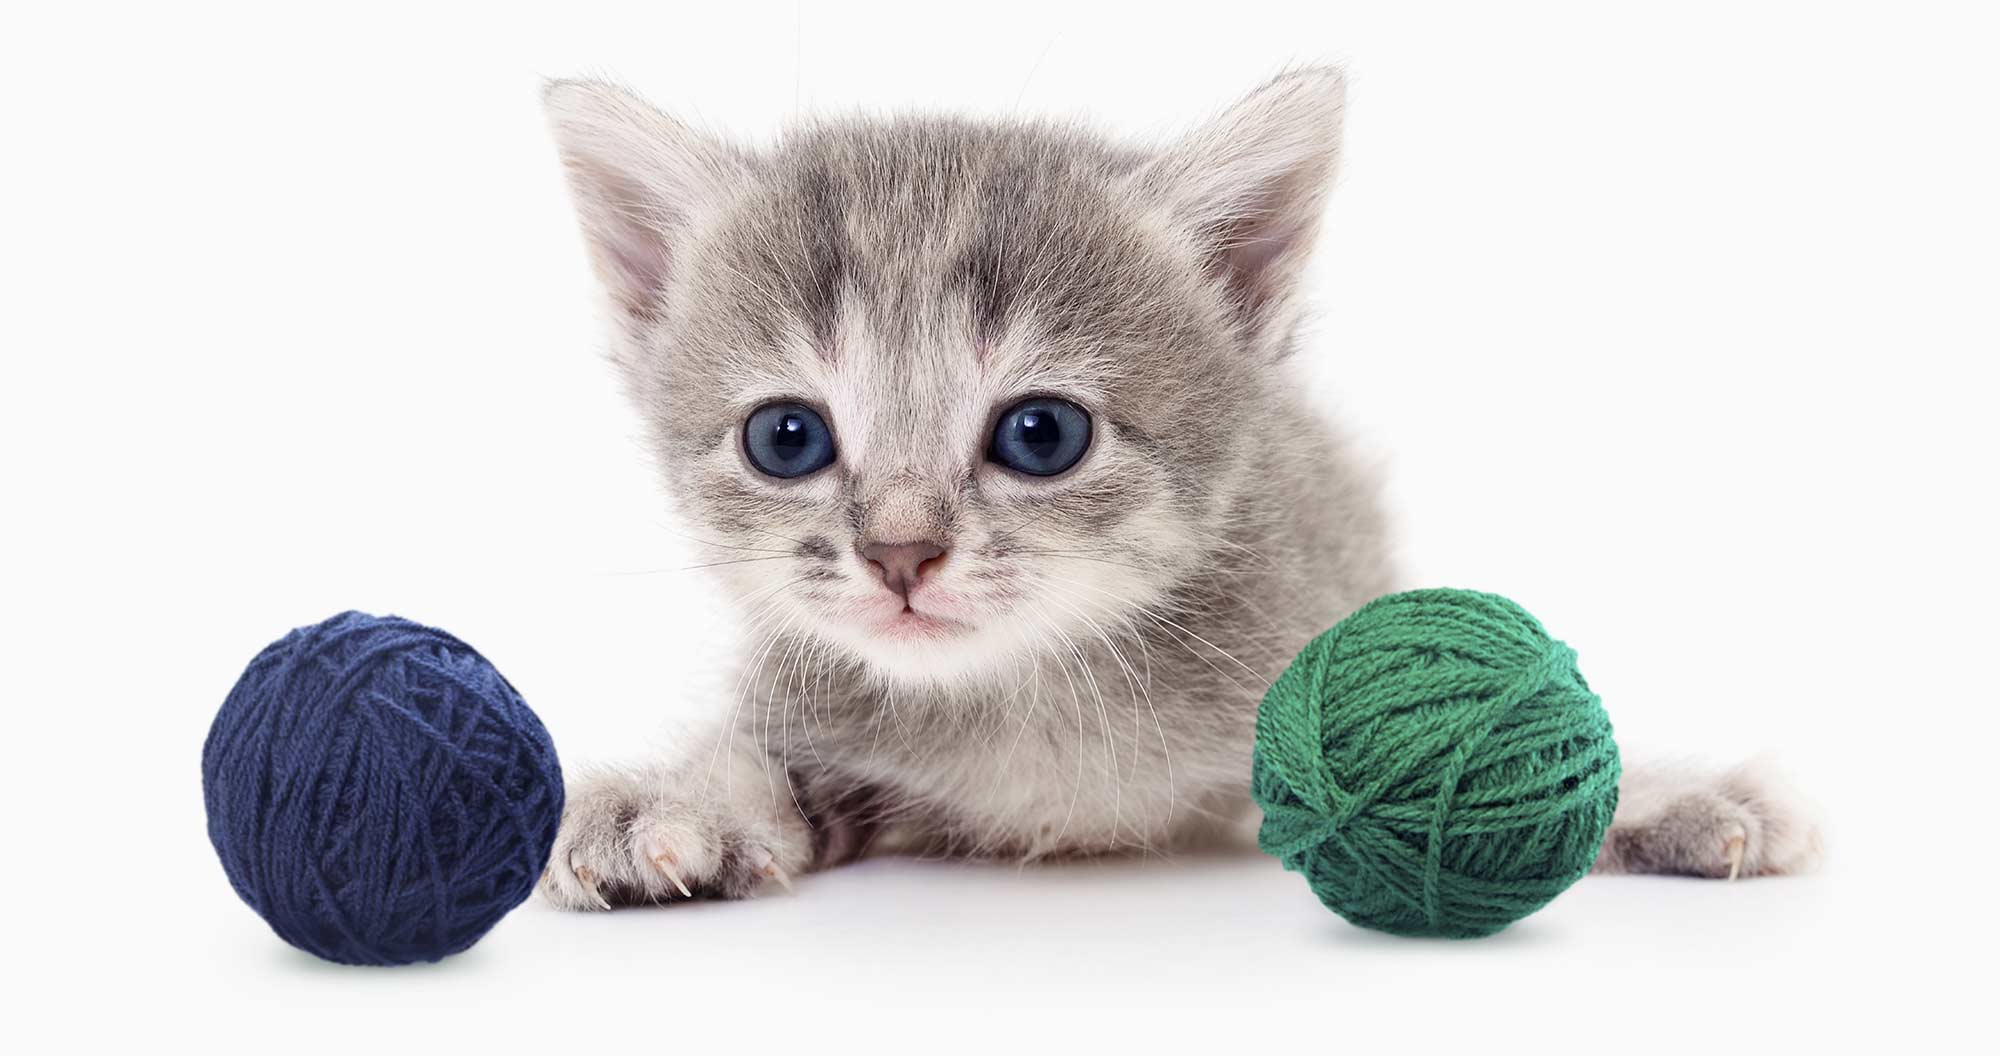 Kitten with two balls of yarn